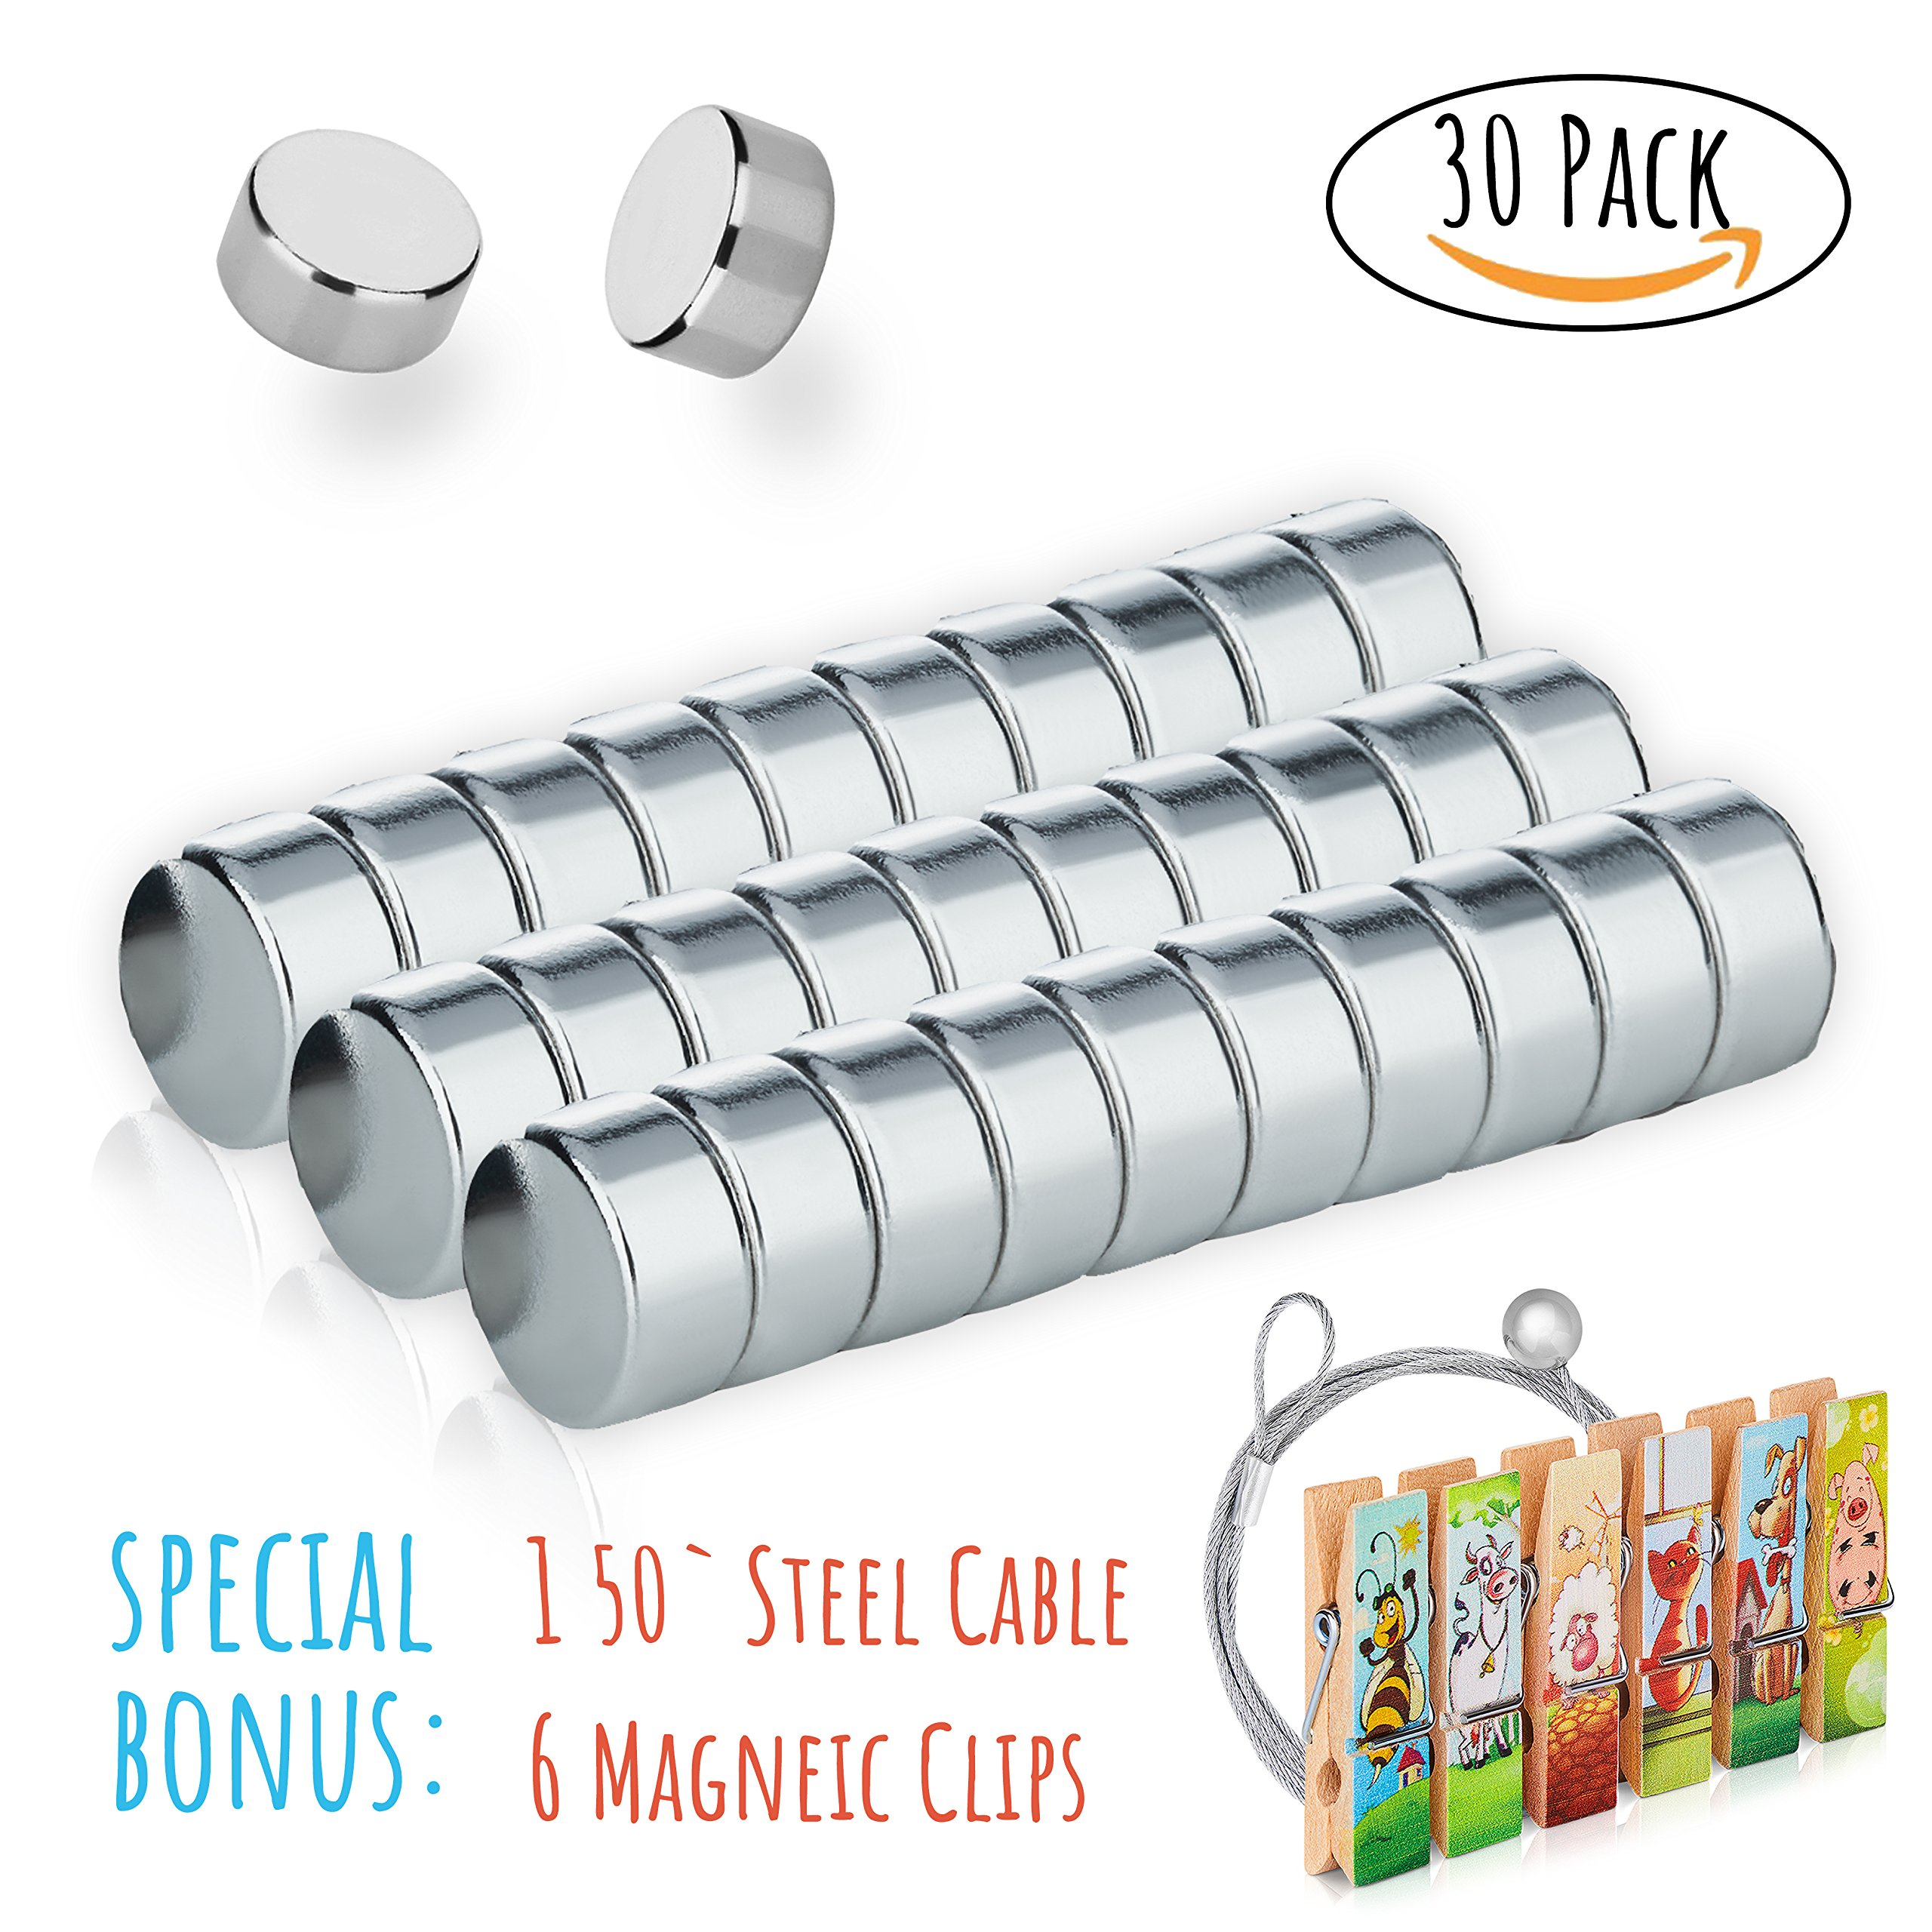 Refrigerator Magnets Set, 30 Small Round Magnets | BONUS - 6 Decorative Magnetic Clips + Unique Photo Display Cable. Use it On Whiteboards, Fridge, Office, Locker Or Classroom By Treats&Smiles by Treats&Smiles